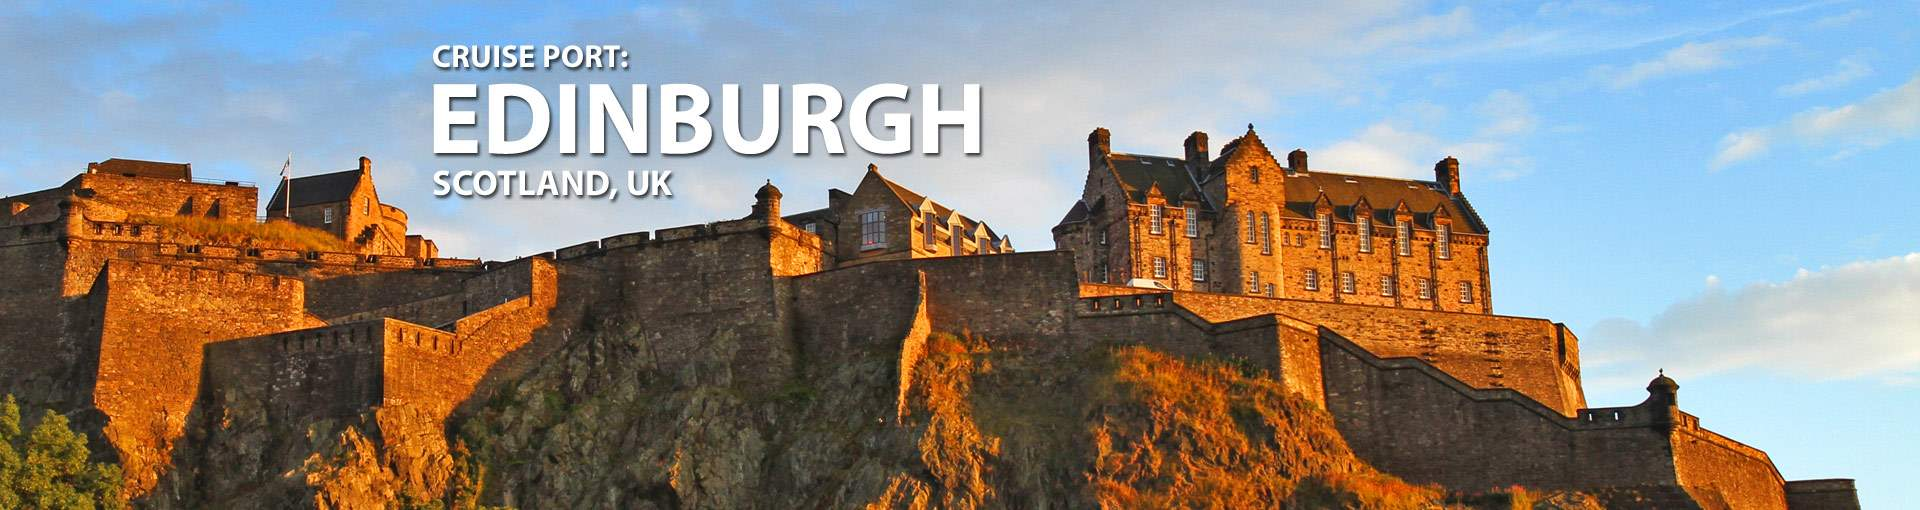 Cruises from Leith/Edinburgh, Scotland, UK